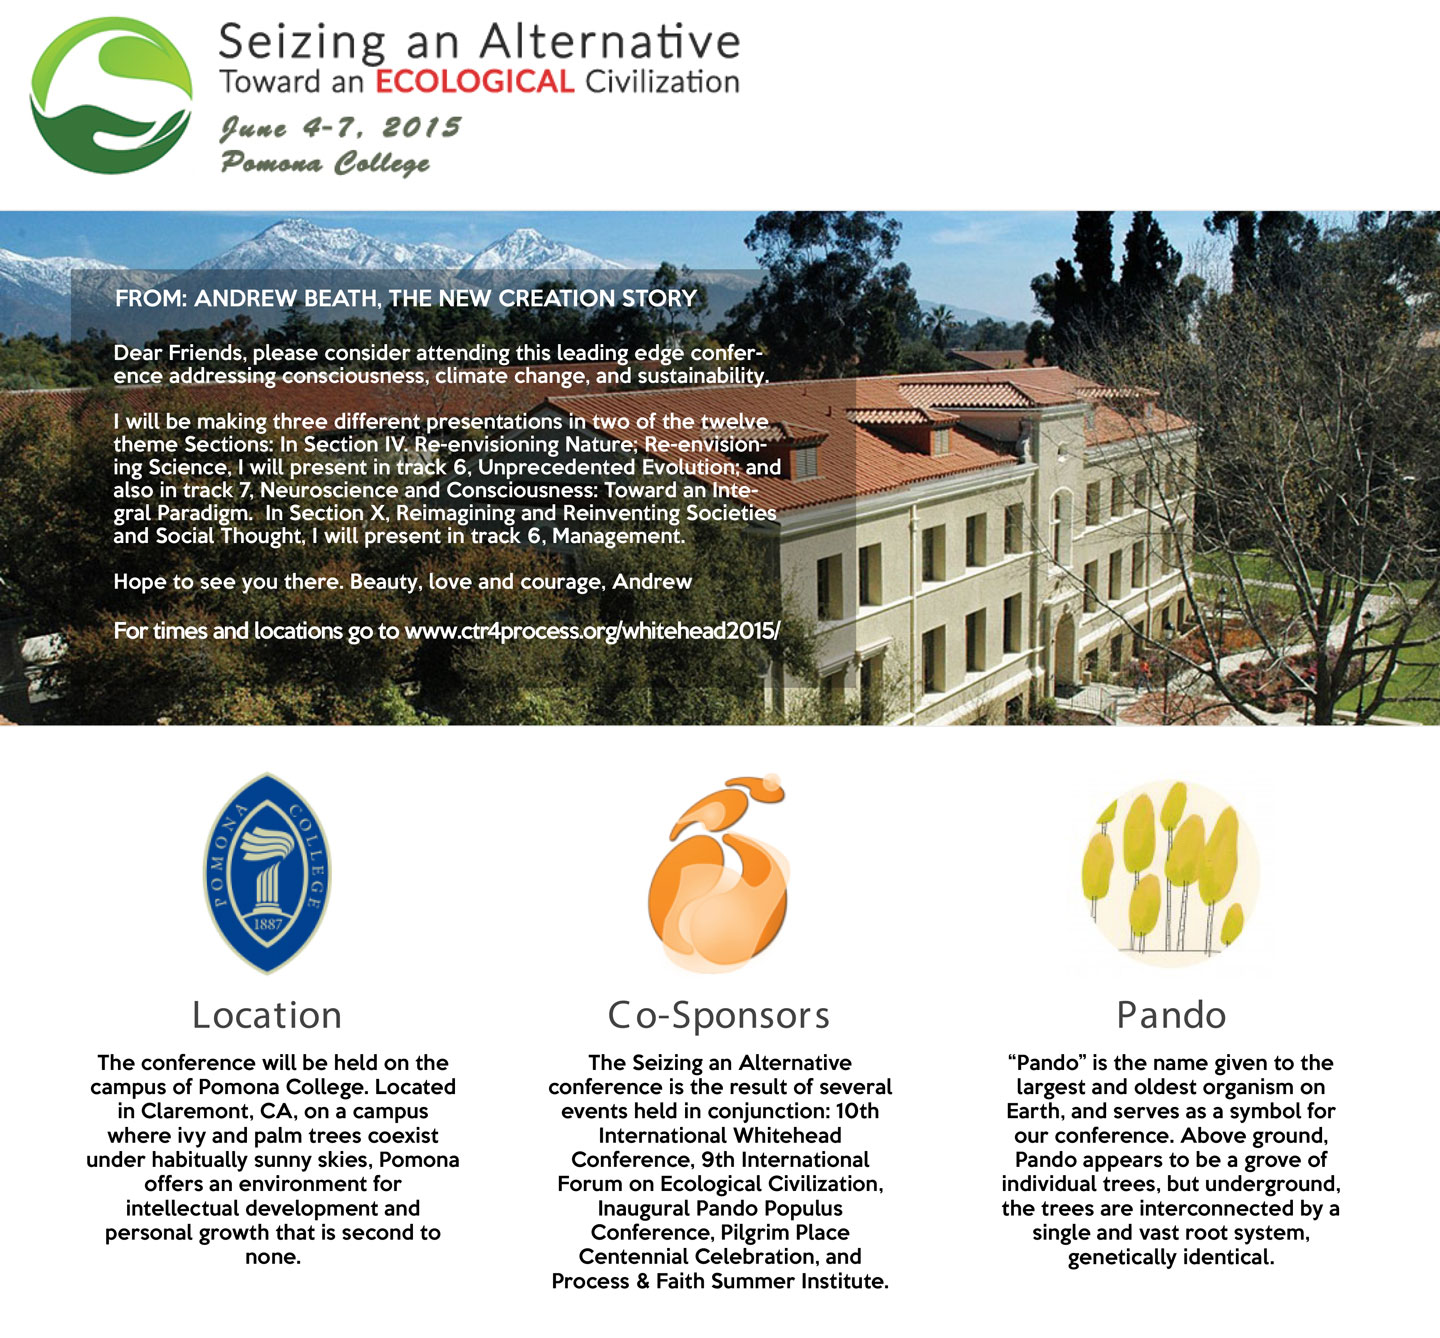 Seizing an Alternative Conference